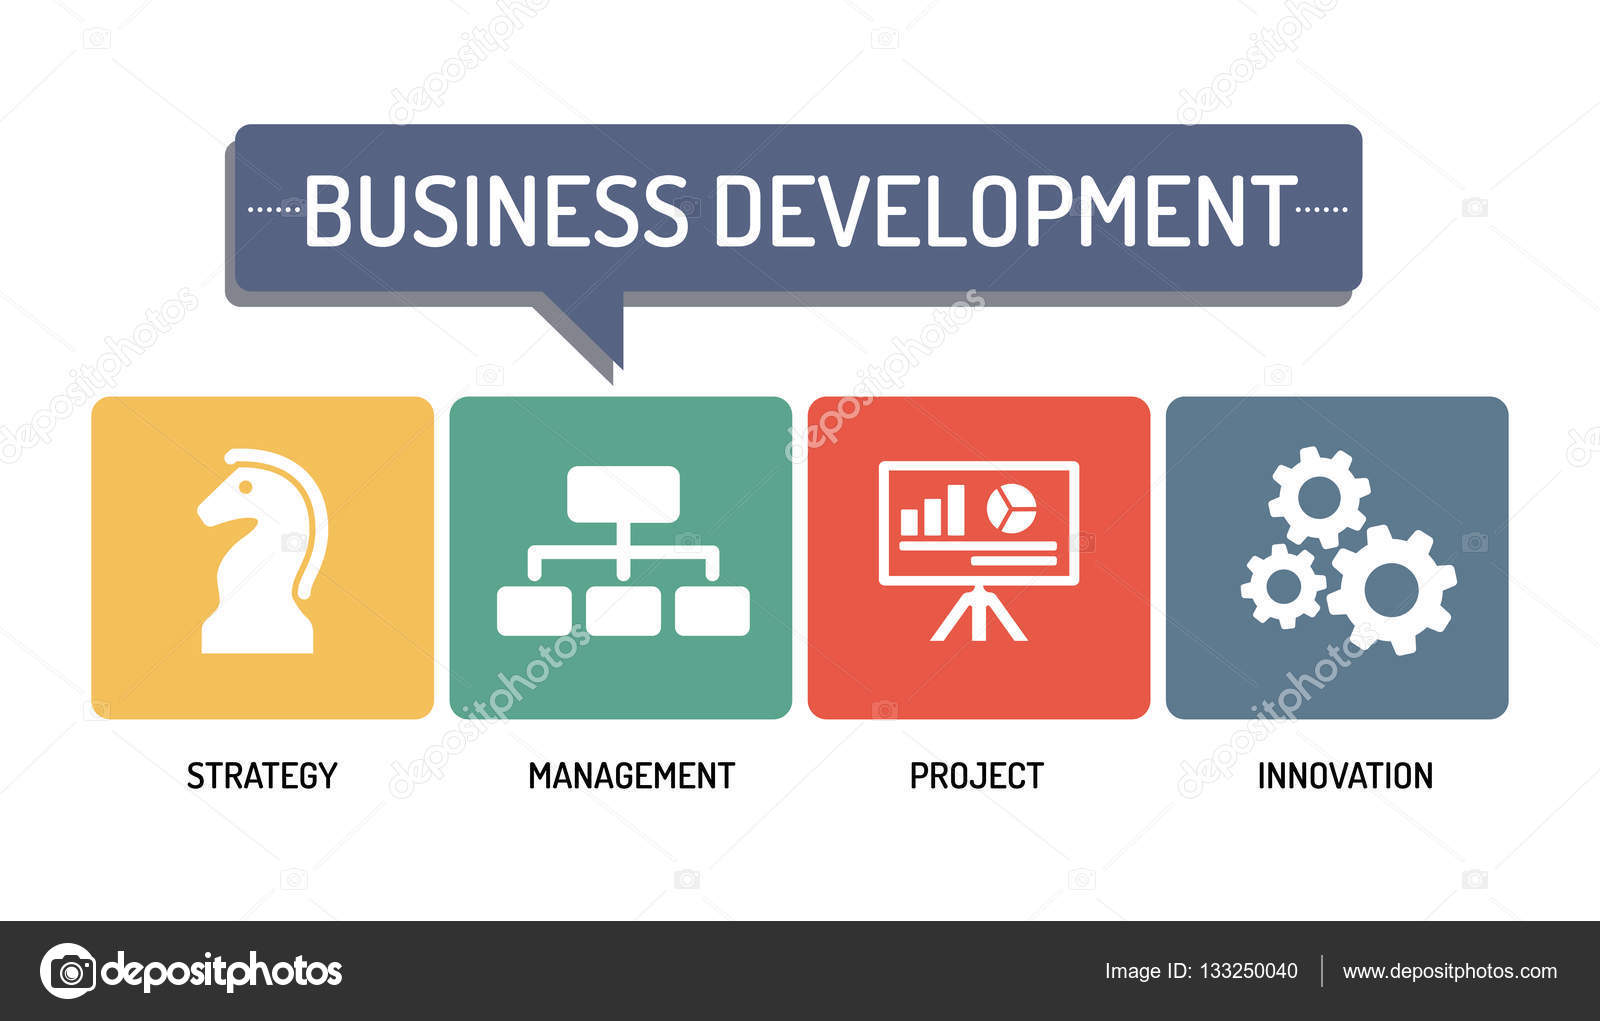 Business Development Icon : Business development pictures to pin on pinterest daddy